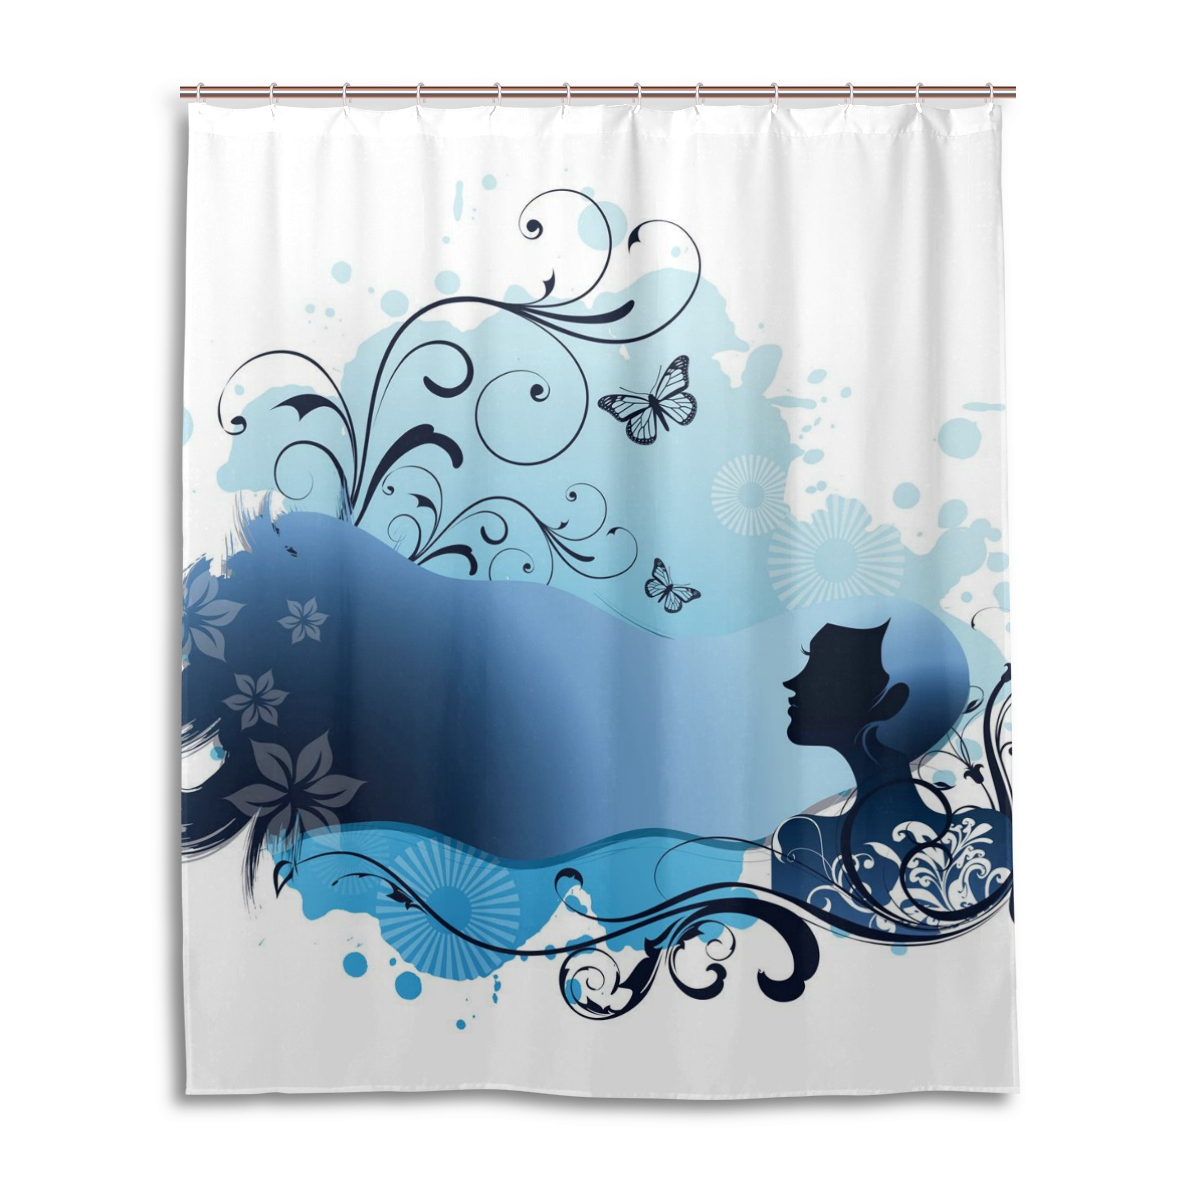 Mold Resistant Shower Curtain